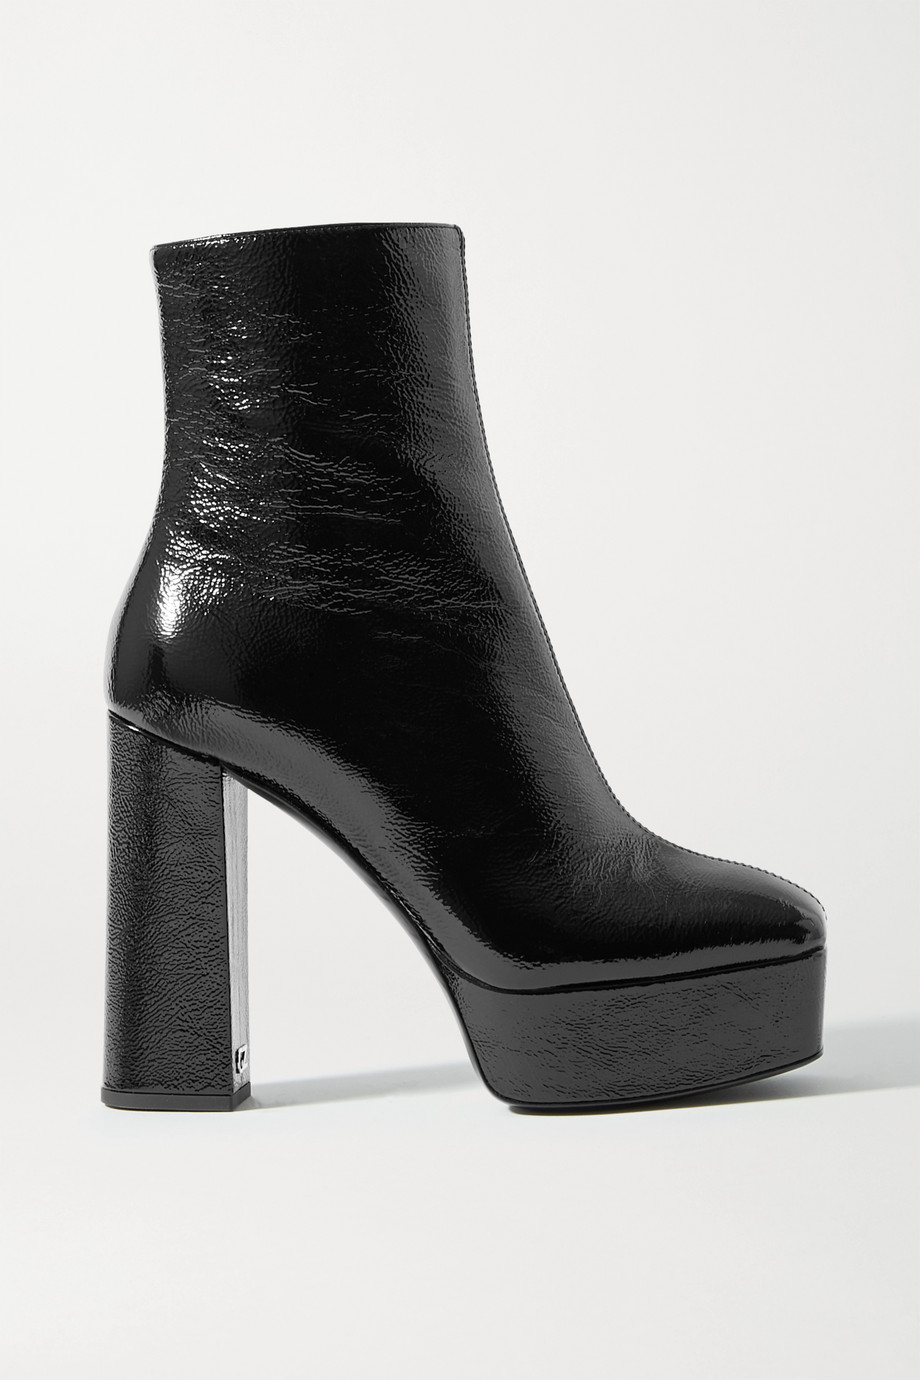 Giuseppe Zanotti Rullino crinkled patent-leather platform ankle boots